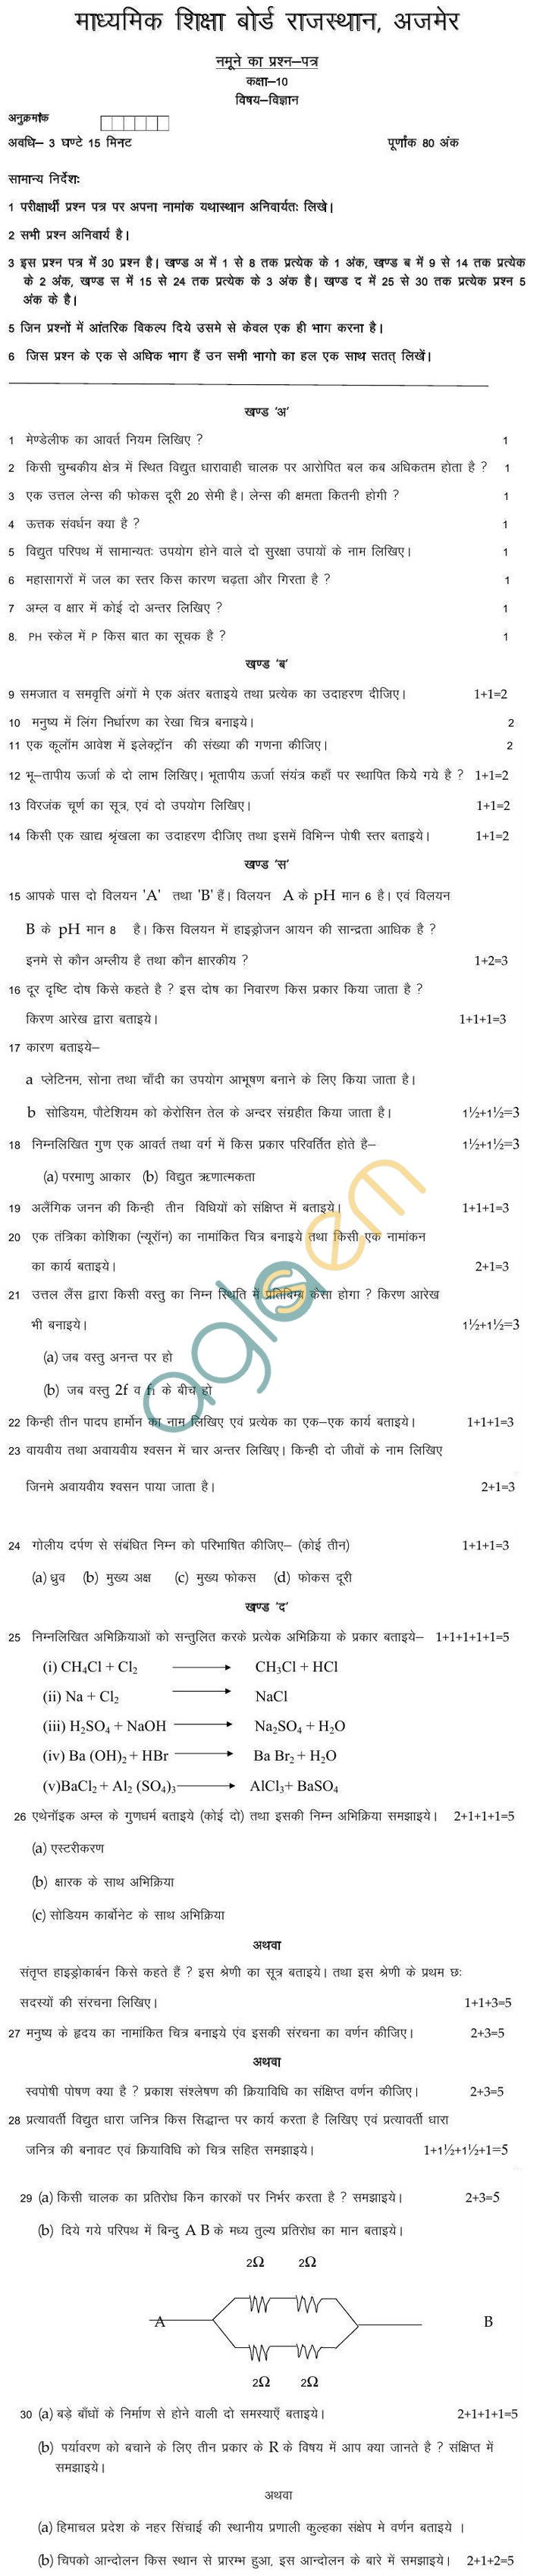 Rajasthan Board Class 10 Science Model Question Paper